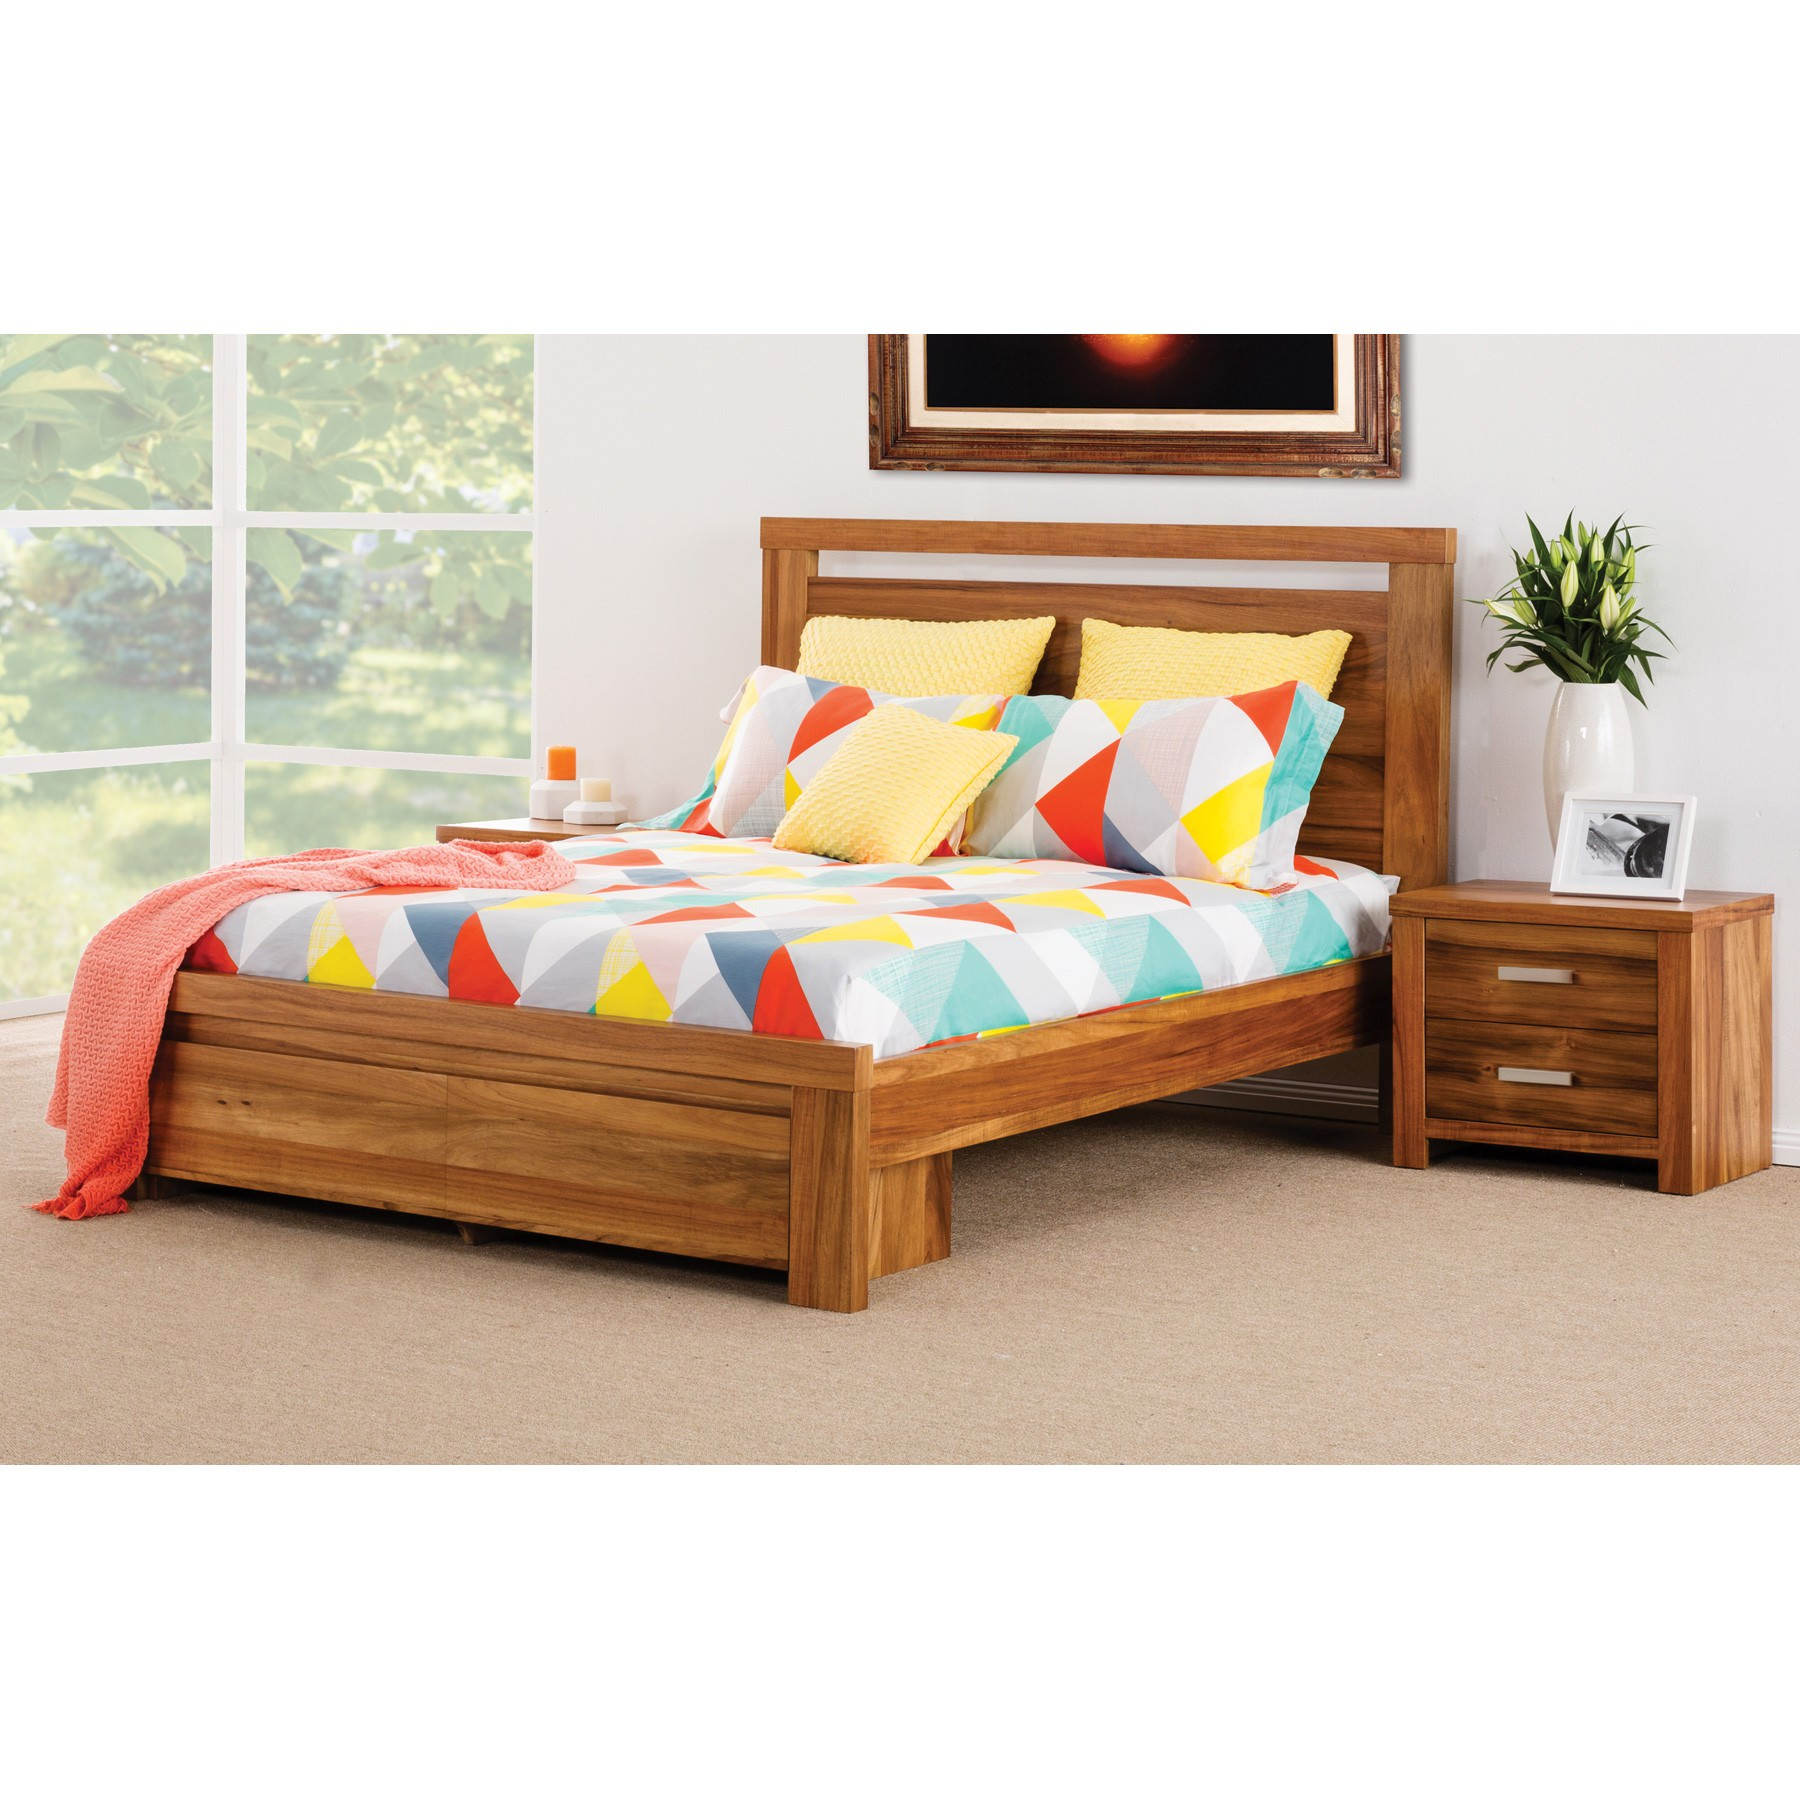 Waratah Wooden Bed with End Drawers, King